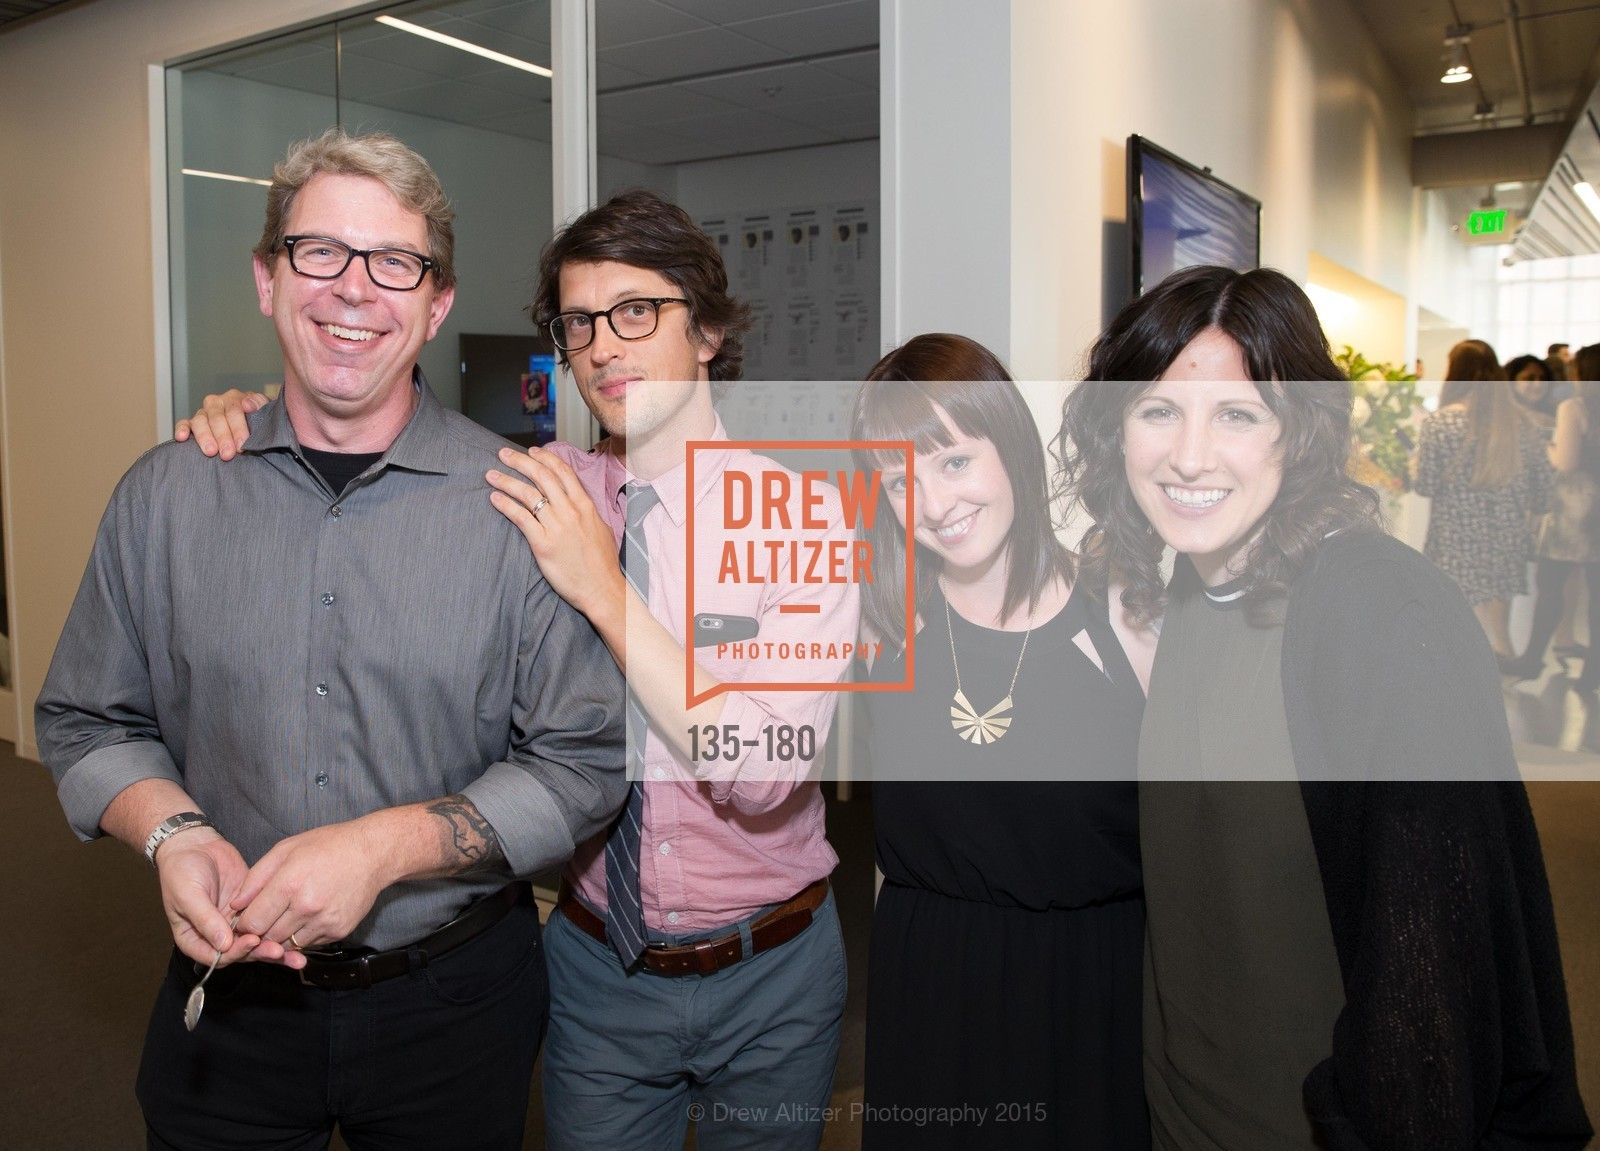 Chuck Squatriglia, Neil Harris, Christie Hemm Klok, Jenna Garrett, Wired Magazine July Cover Release Celebration at New Wired Office, Wired Magazine Offices. 520 3rd Street, June 24th, 2015,Drew Altizer, Drew Altizer Photography, full-service agency, private events, San Francisco photographer, photographer california